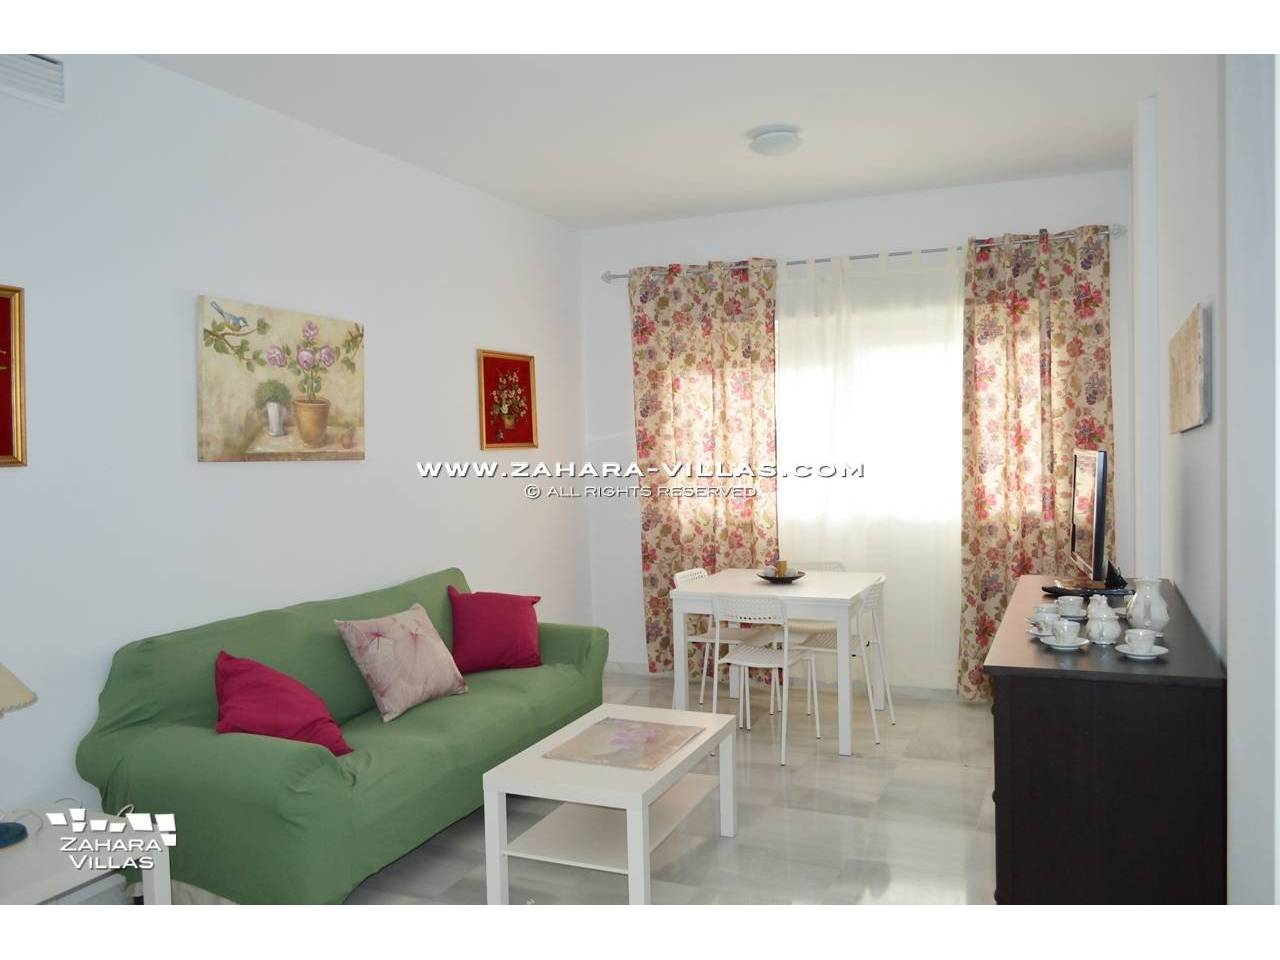 Imagen 1 de Apartment for sale 50 meters from the beach